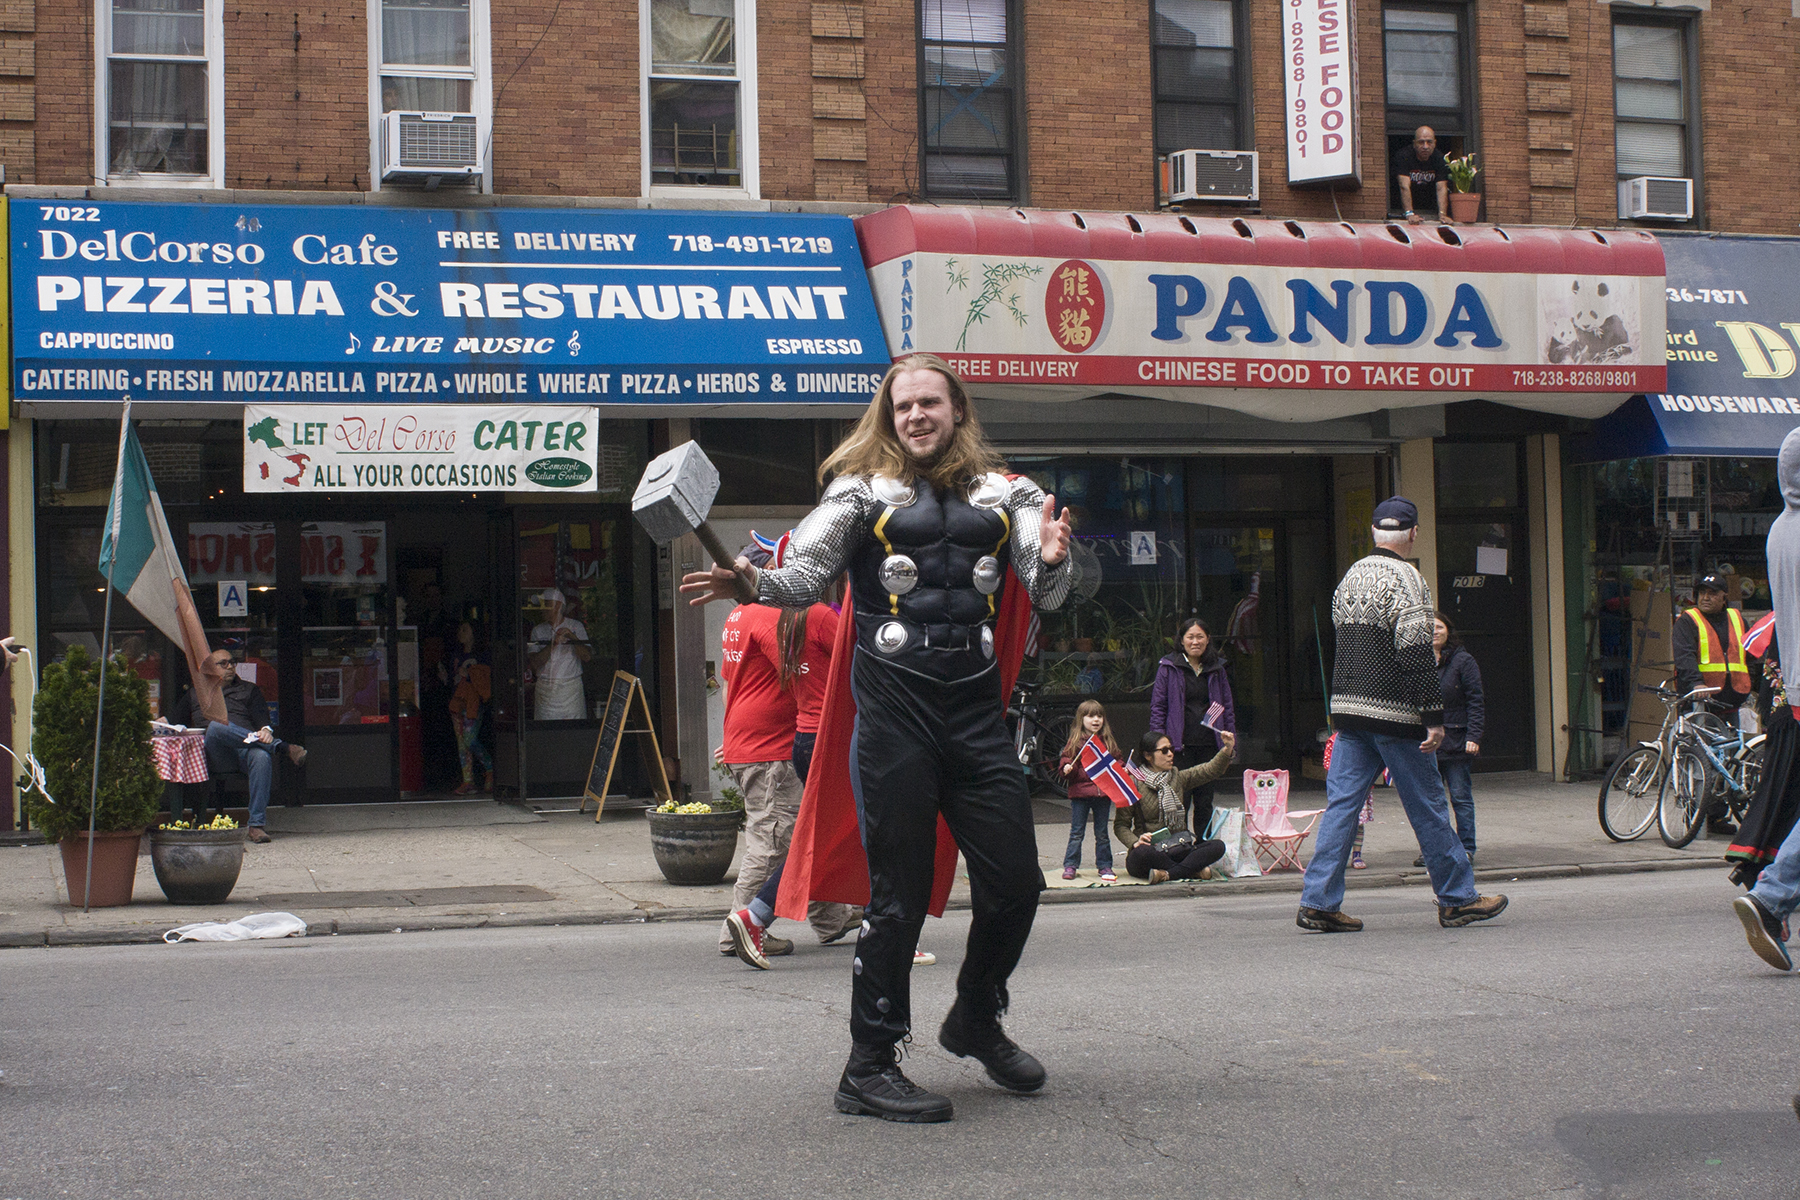 This young man from the Hudson Valley Lodge dressed up as Thor,the superhero from Marvel Comics based on the Norse god.